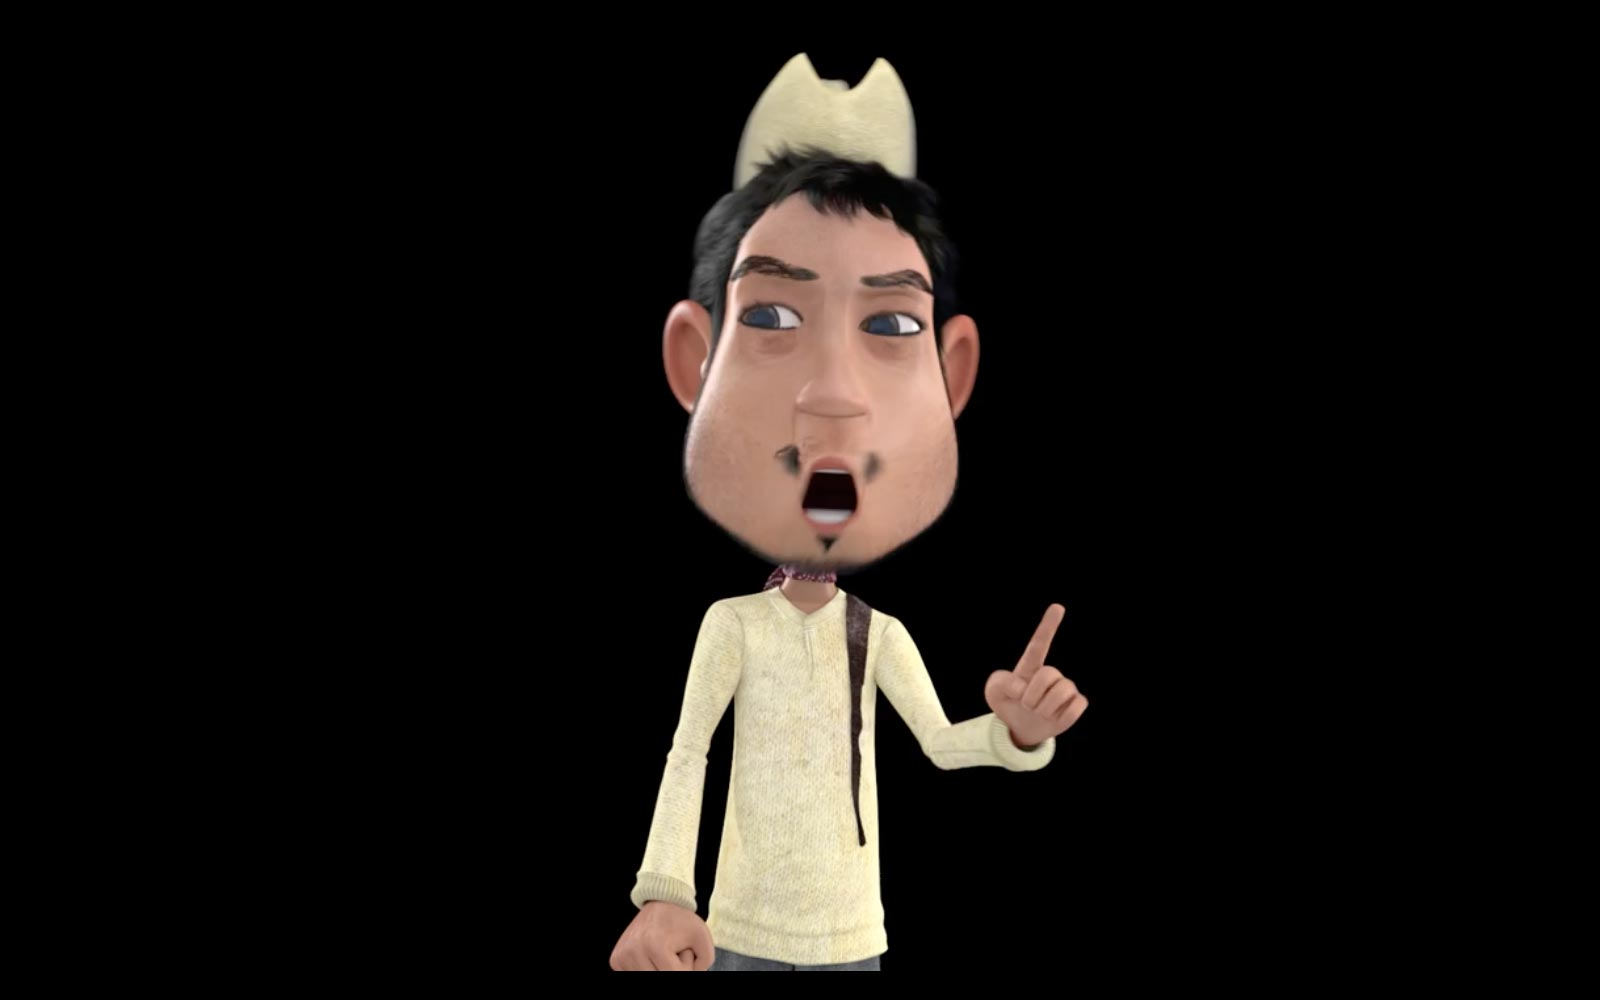 Cantinflas Animation